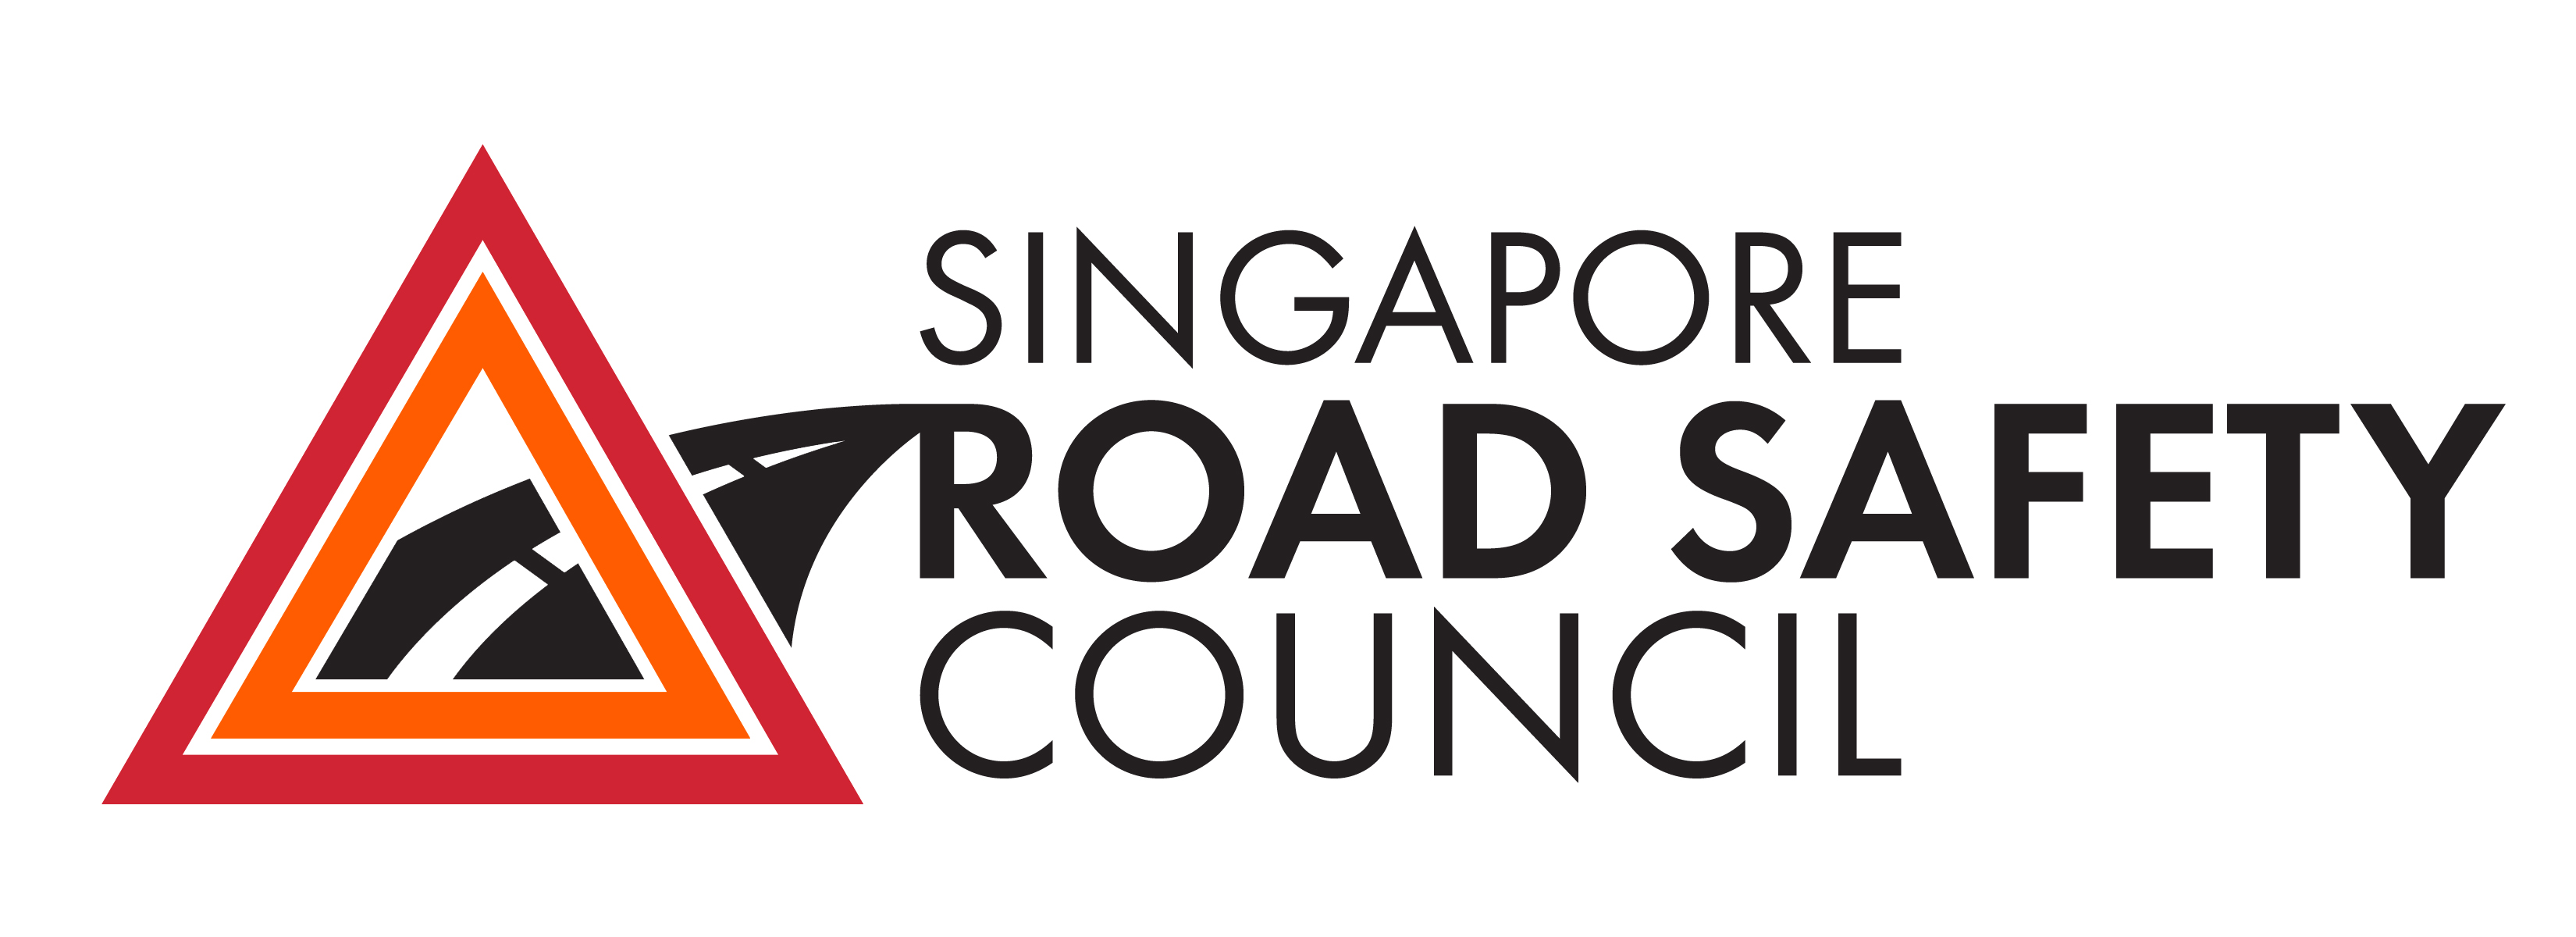 Singapore Road Safety Council